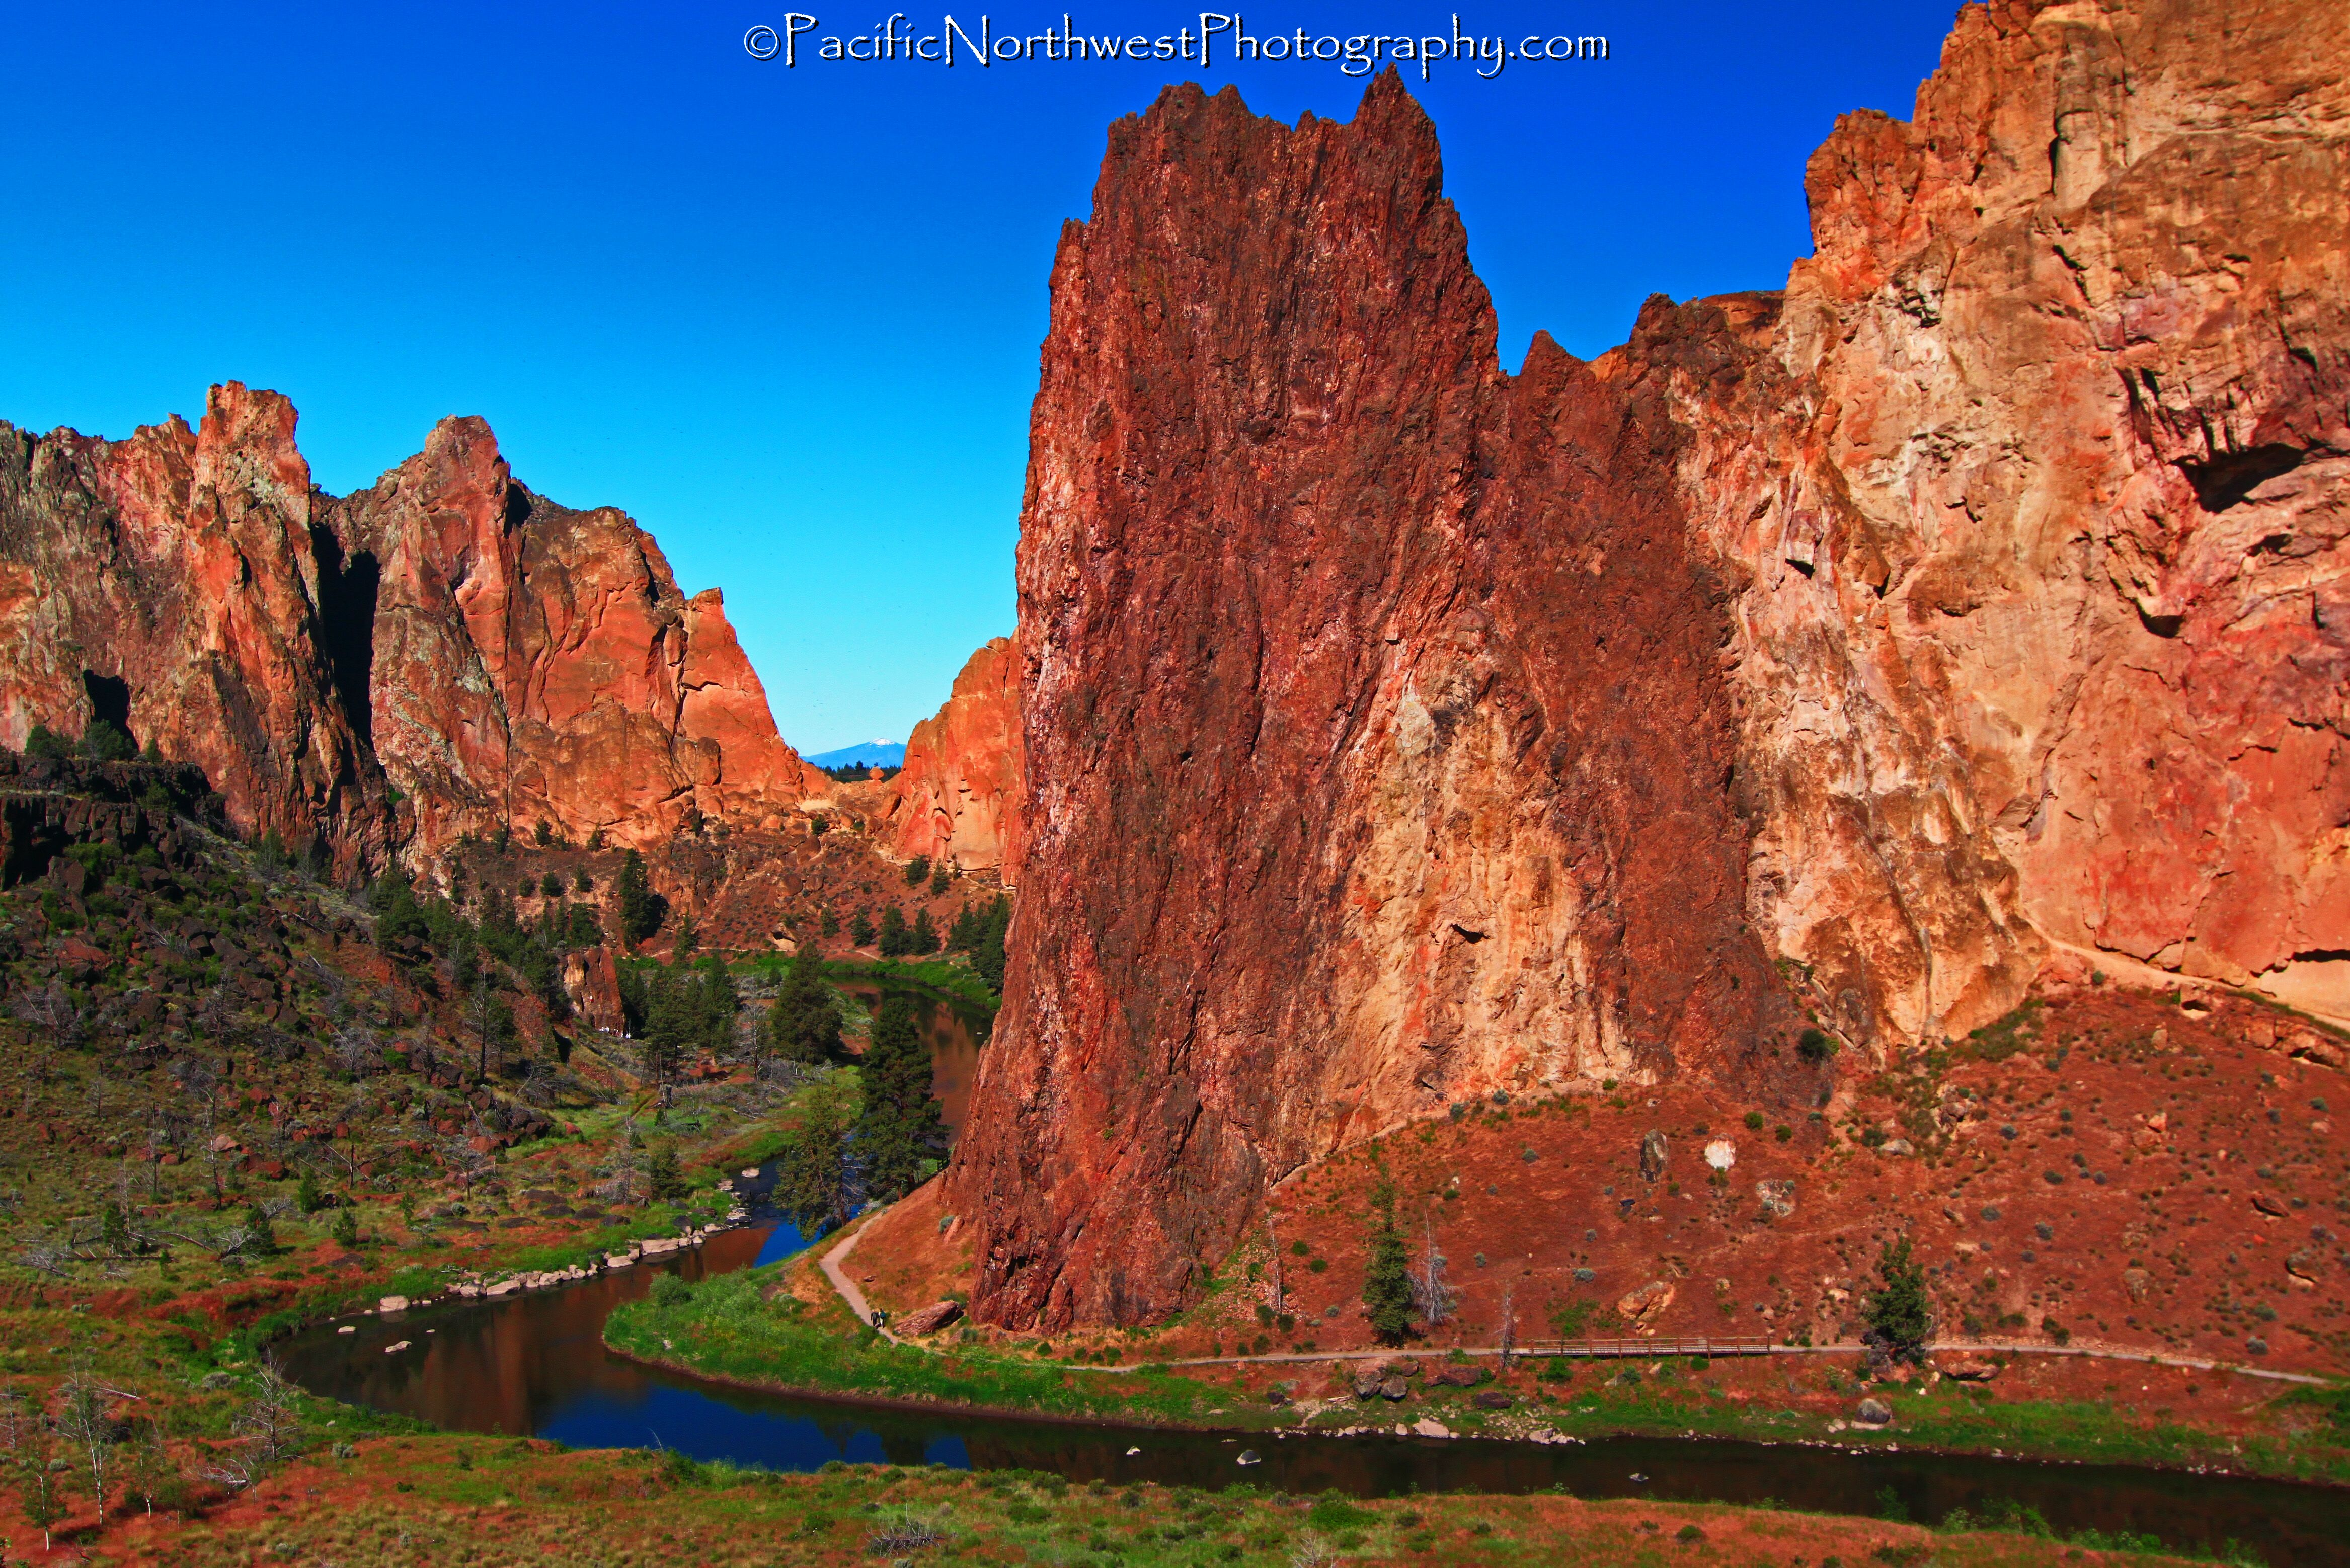 Smith Rock and the Crooked river